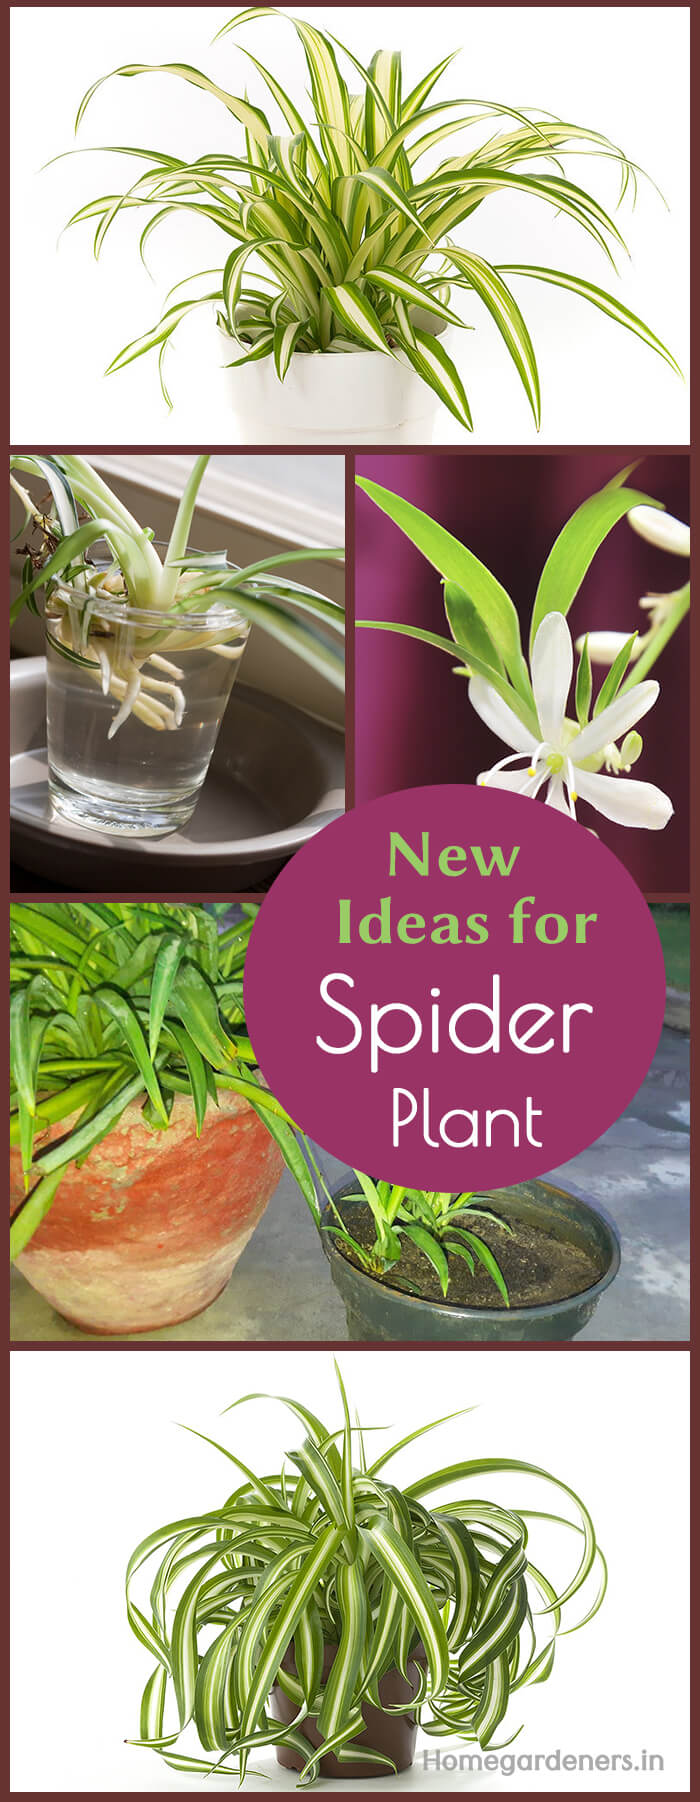 New Ideas for Spider Plants